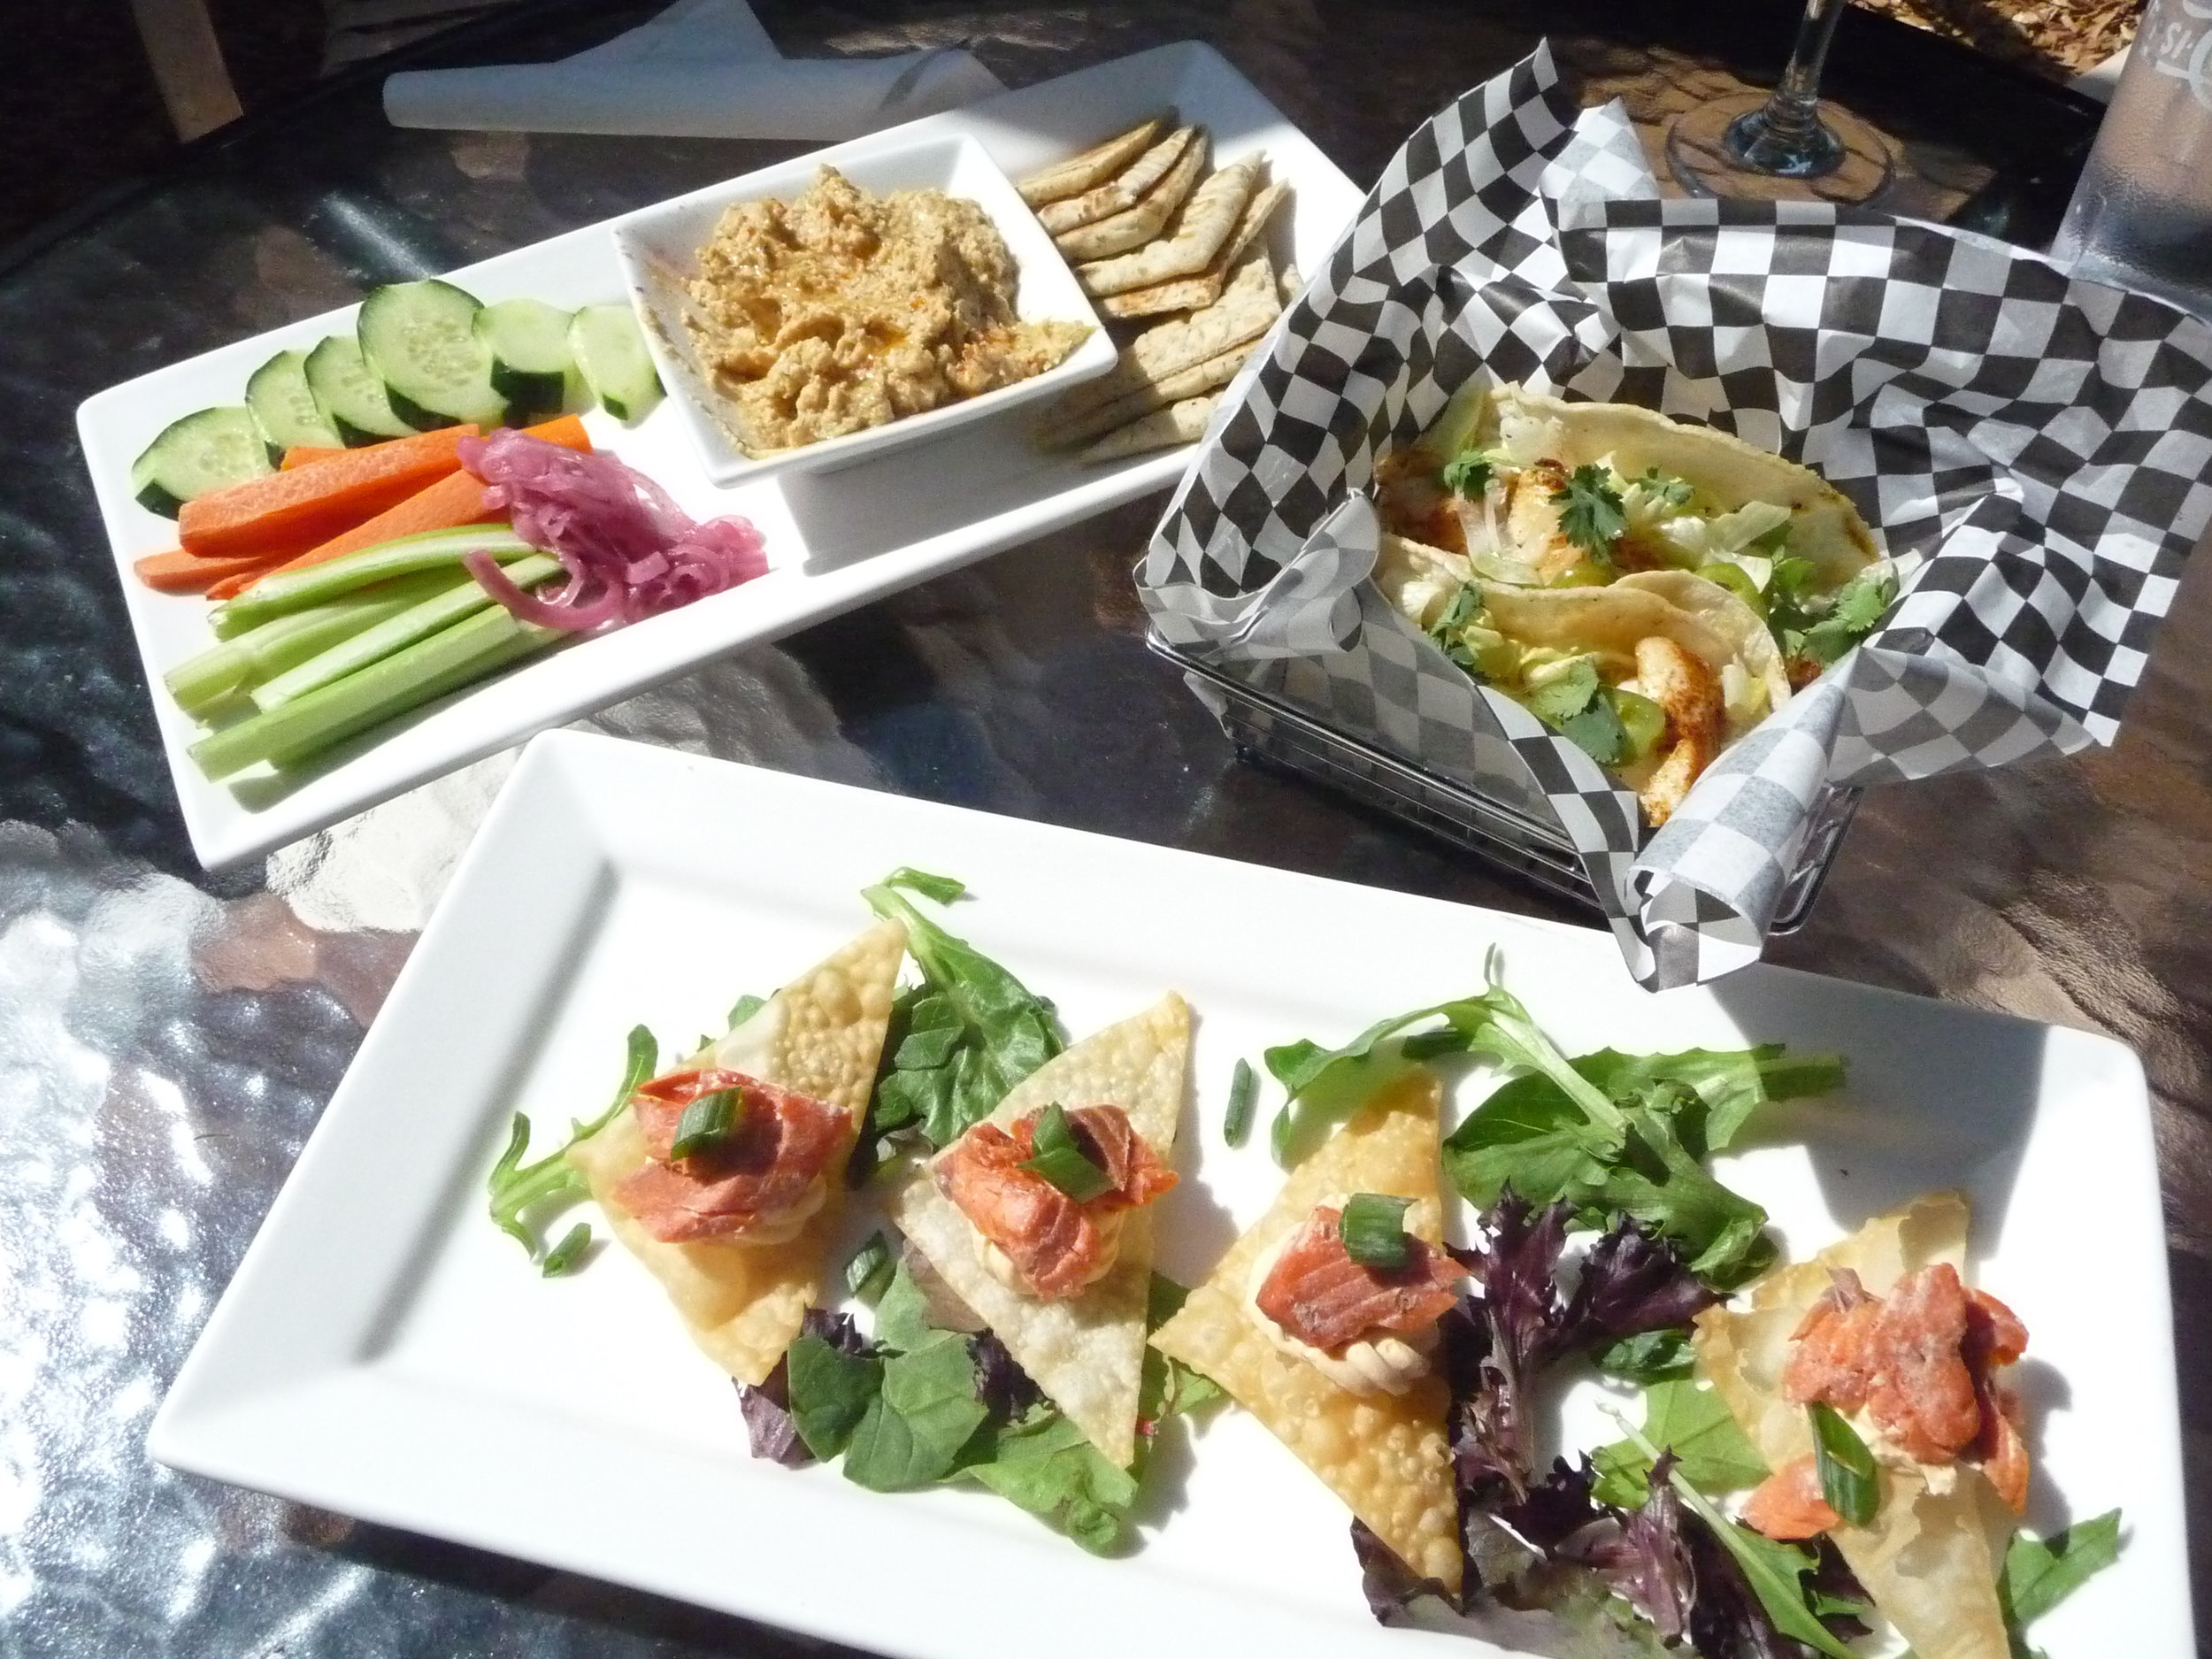 Salmon wontons, red snapper fish tacos, and hummus platter at Farrar's Bistro